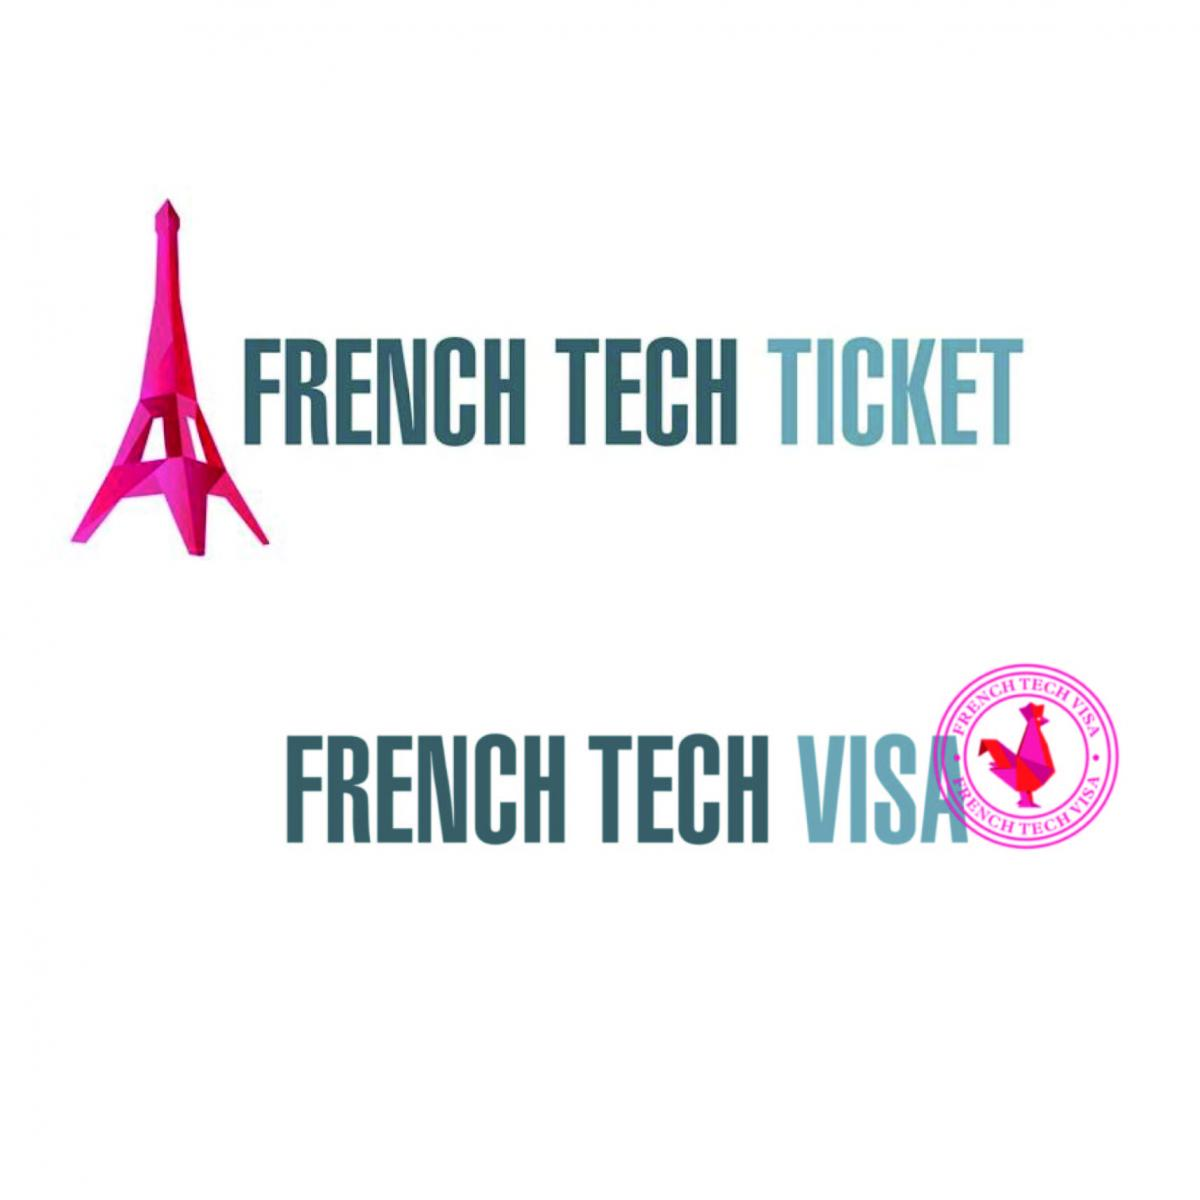 French Tech Ticket